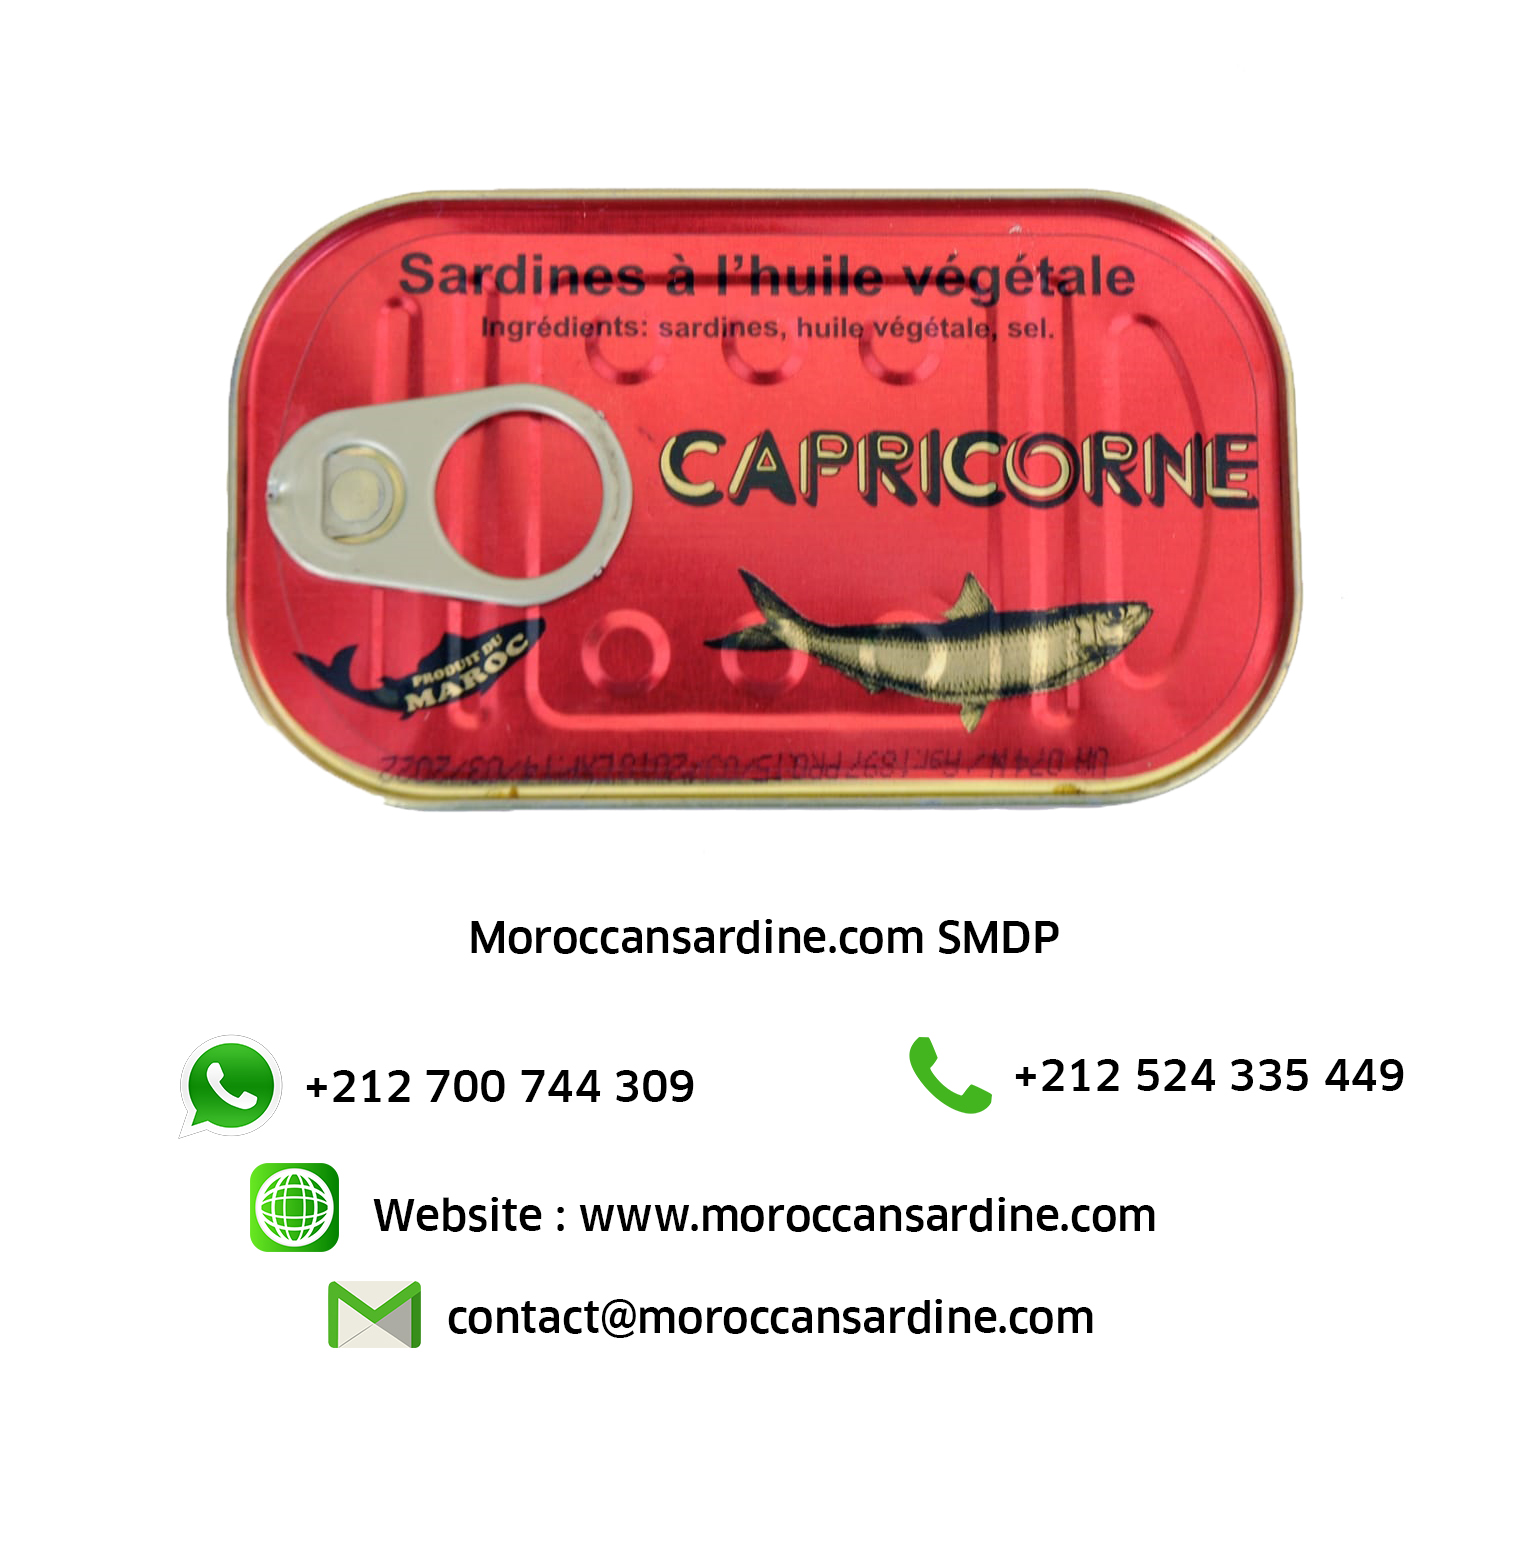 Authentic Moroccan sardines